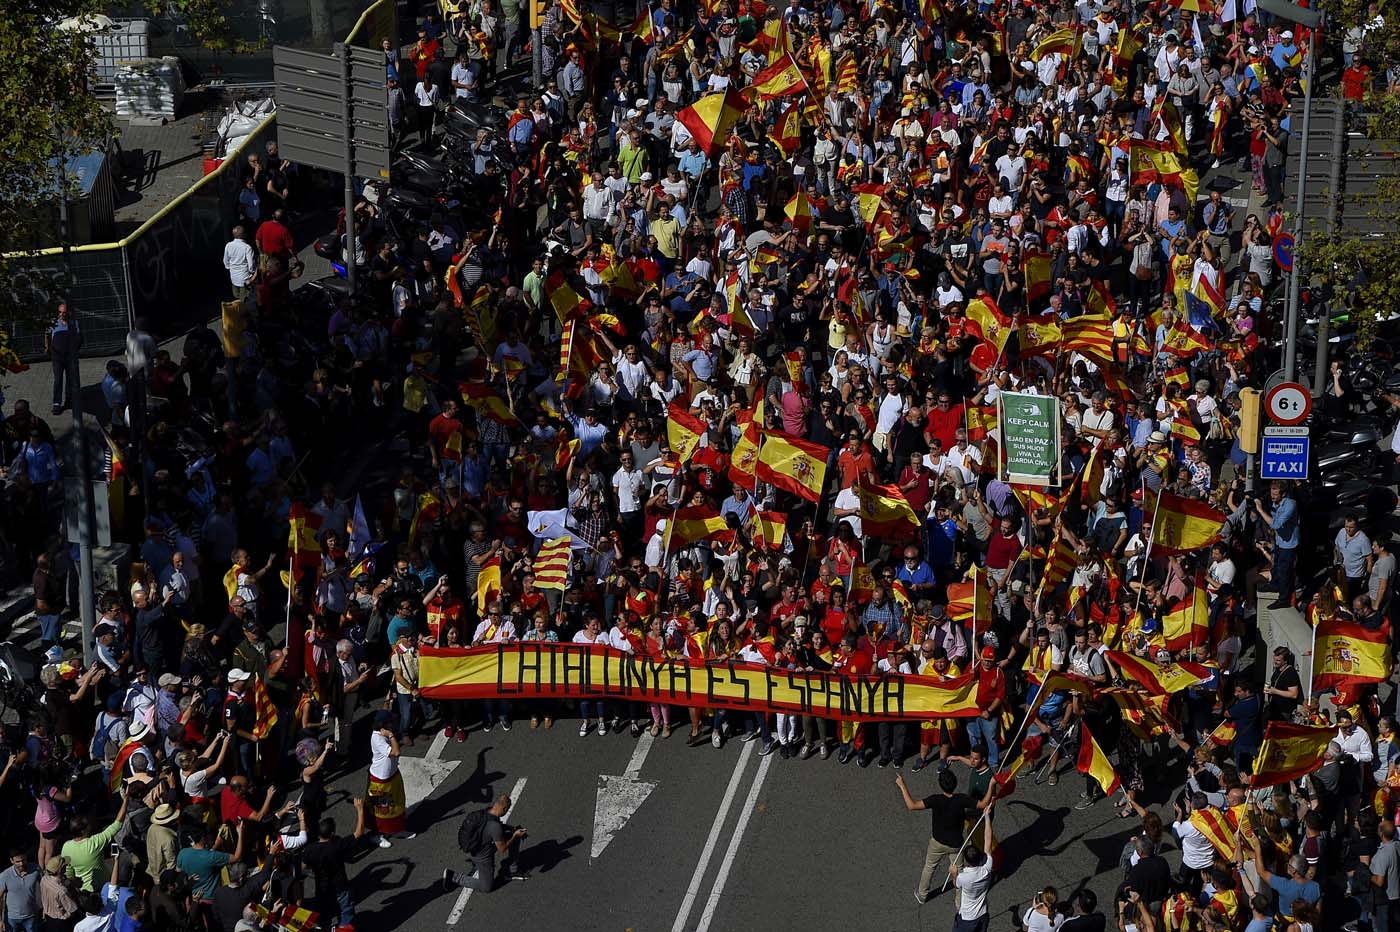 """Protesters hold a giant Spanish flag reading """"Catalonia is Spain"""" during a demonstration called by """"Societat Civil Catalana"""" (Catalan Civil Society) to support the unity of Spain on October 8, 2017 in Barcelona. Spain braced for more protests despite tentative signs that the sides may be seeking to defuse the crisis after Madrid offered a first apology to Catalans injured by police during their outlawed independence vote. / AFP PHOTO / LLUIS GENE"""